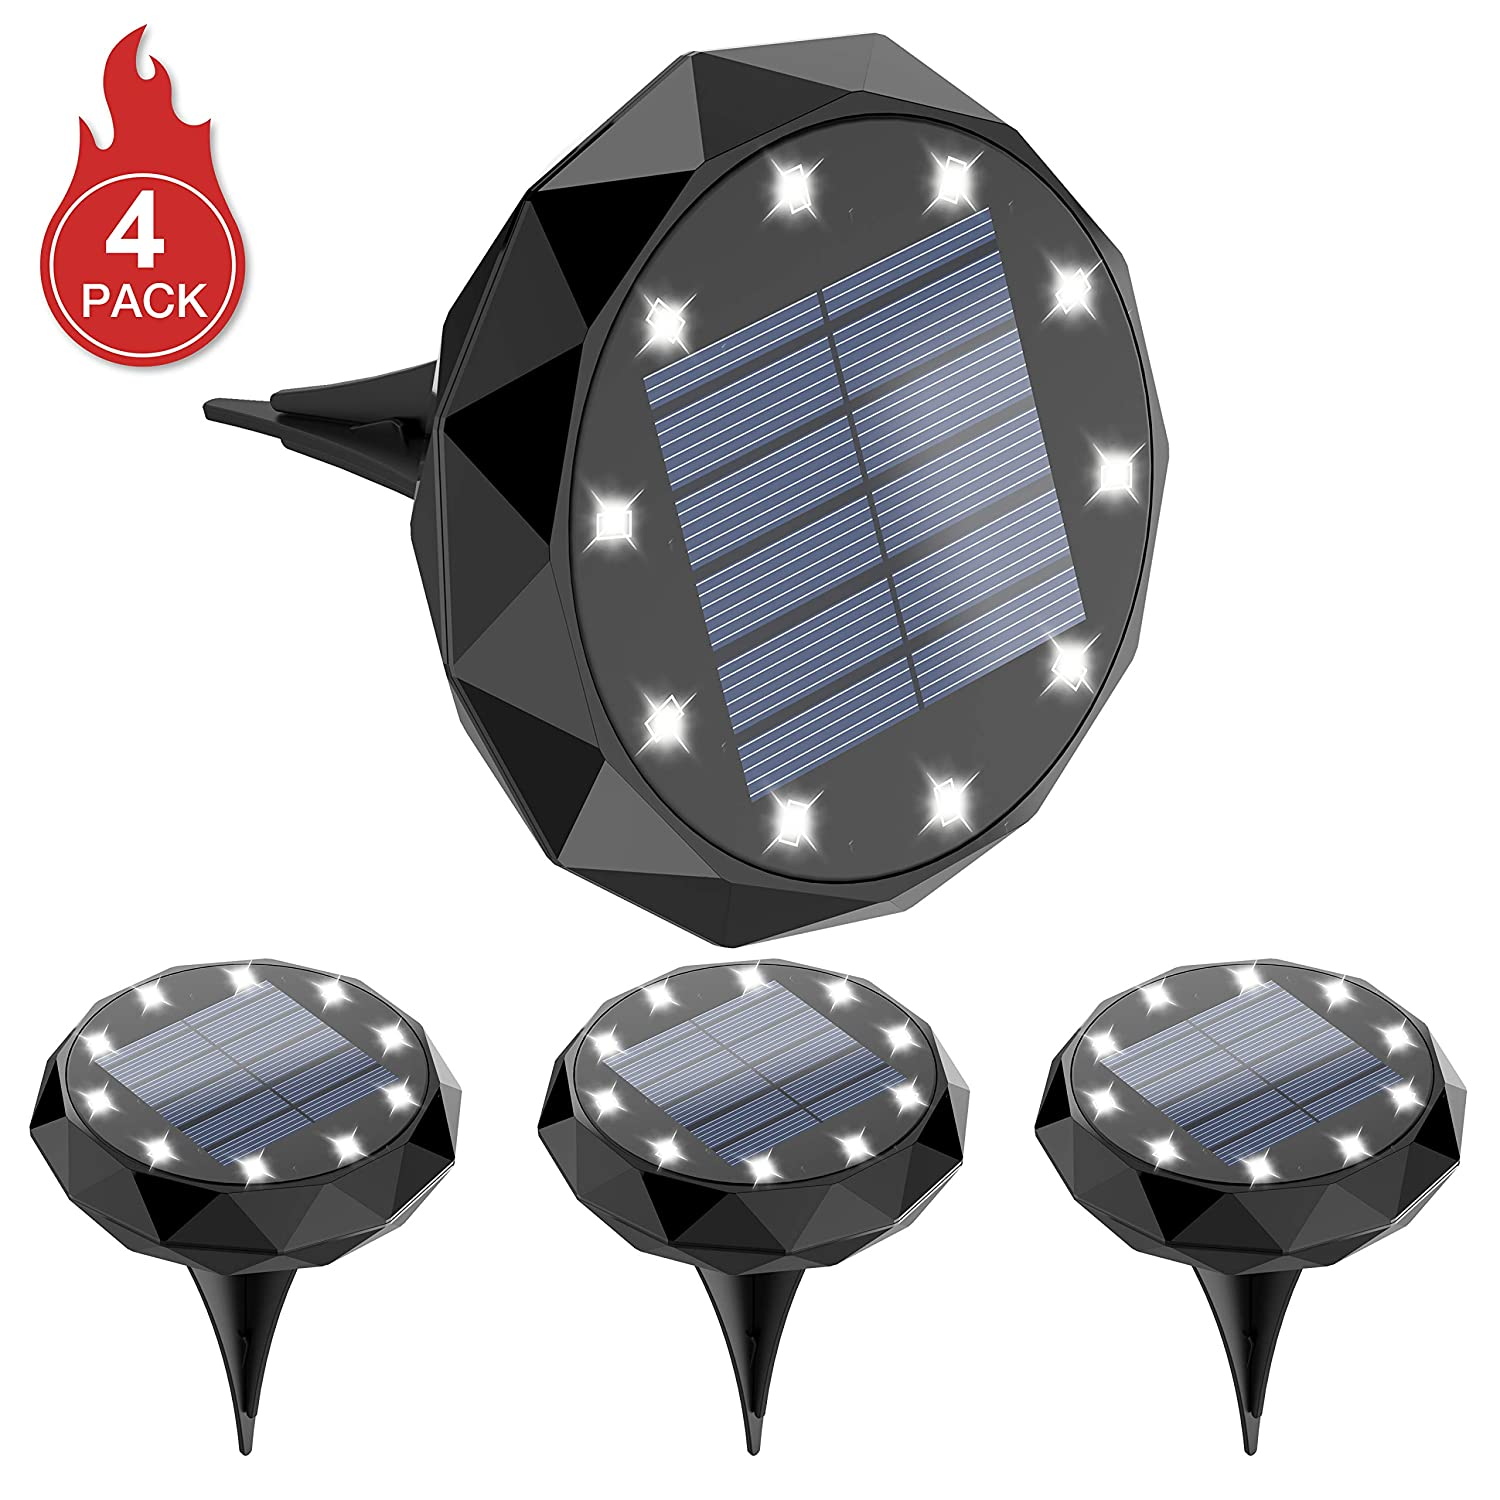 Leknes Solar Ground Lights